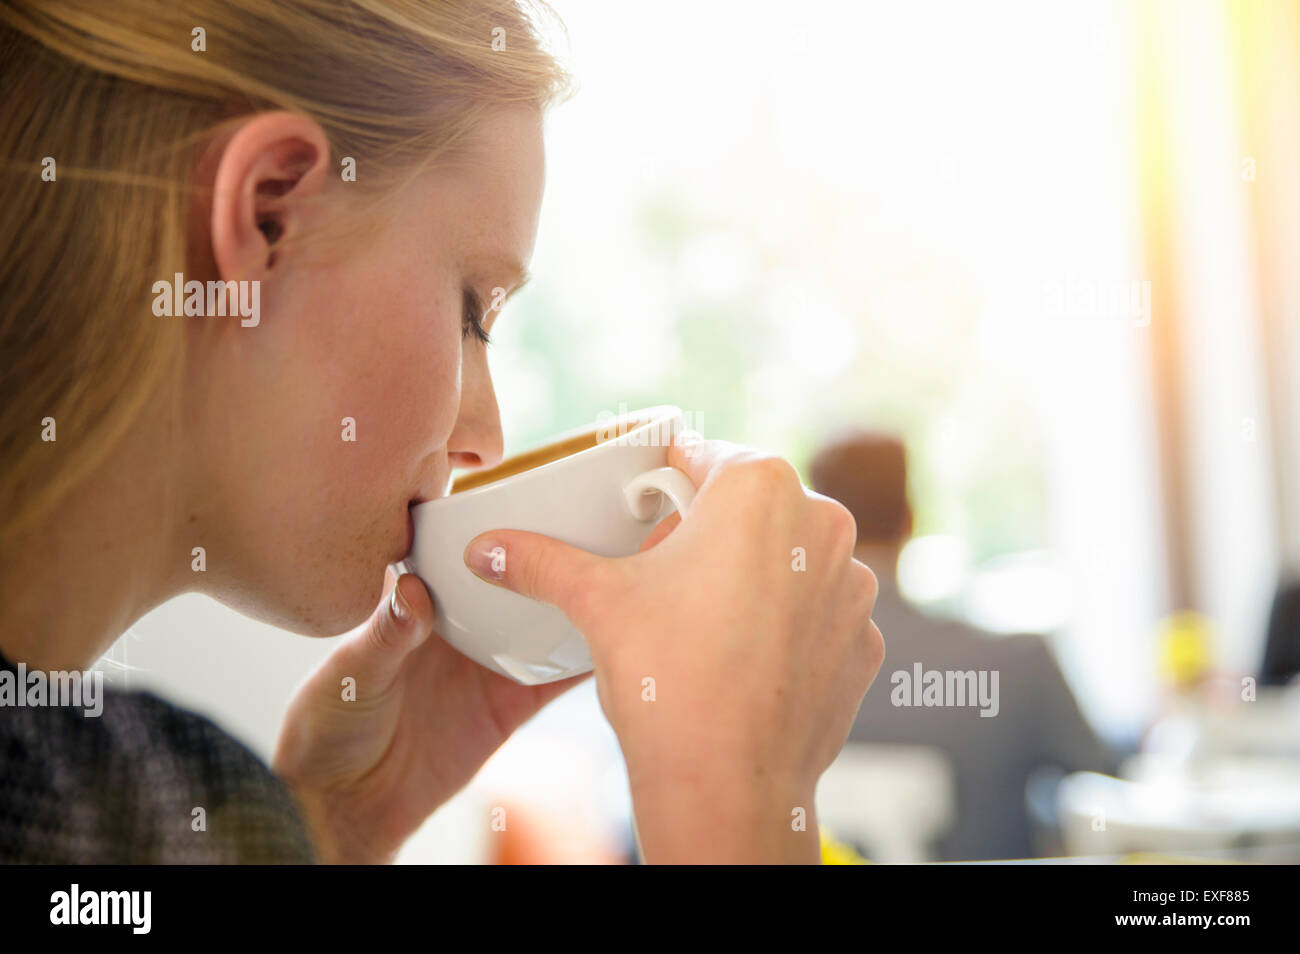 Young woman drinking coffee in cafe, close-up Photo Stock